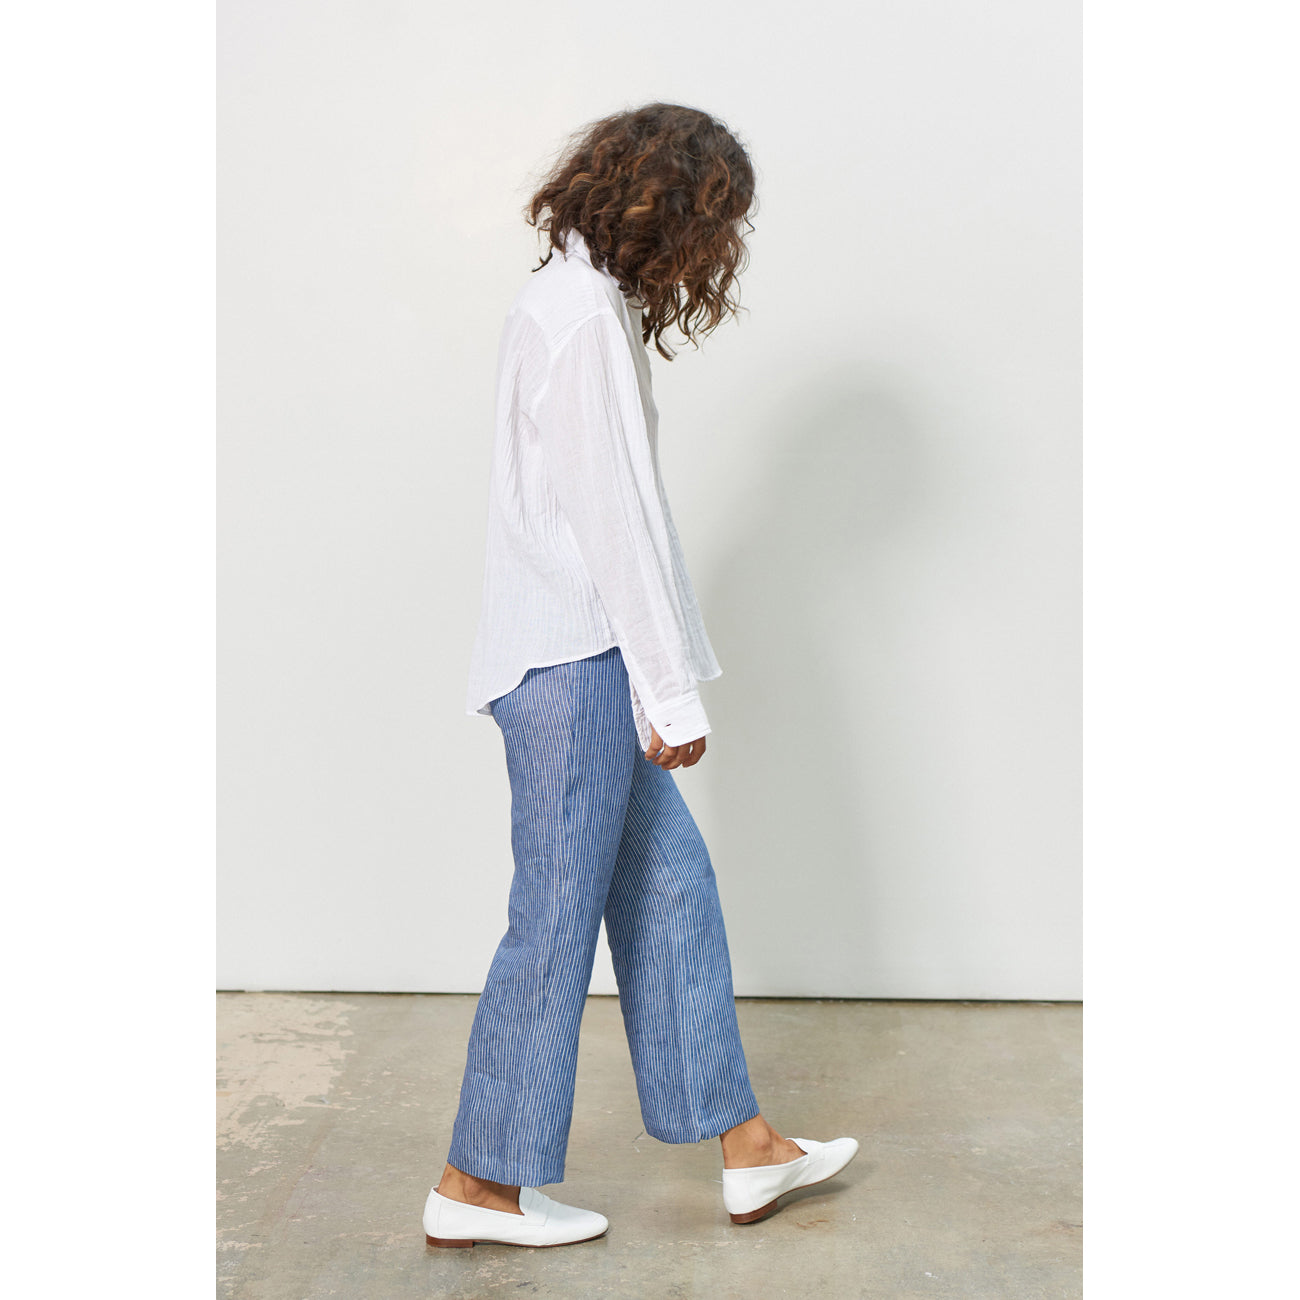 Mara Hoffman Arlene Pant in Denim Stripe